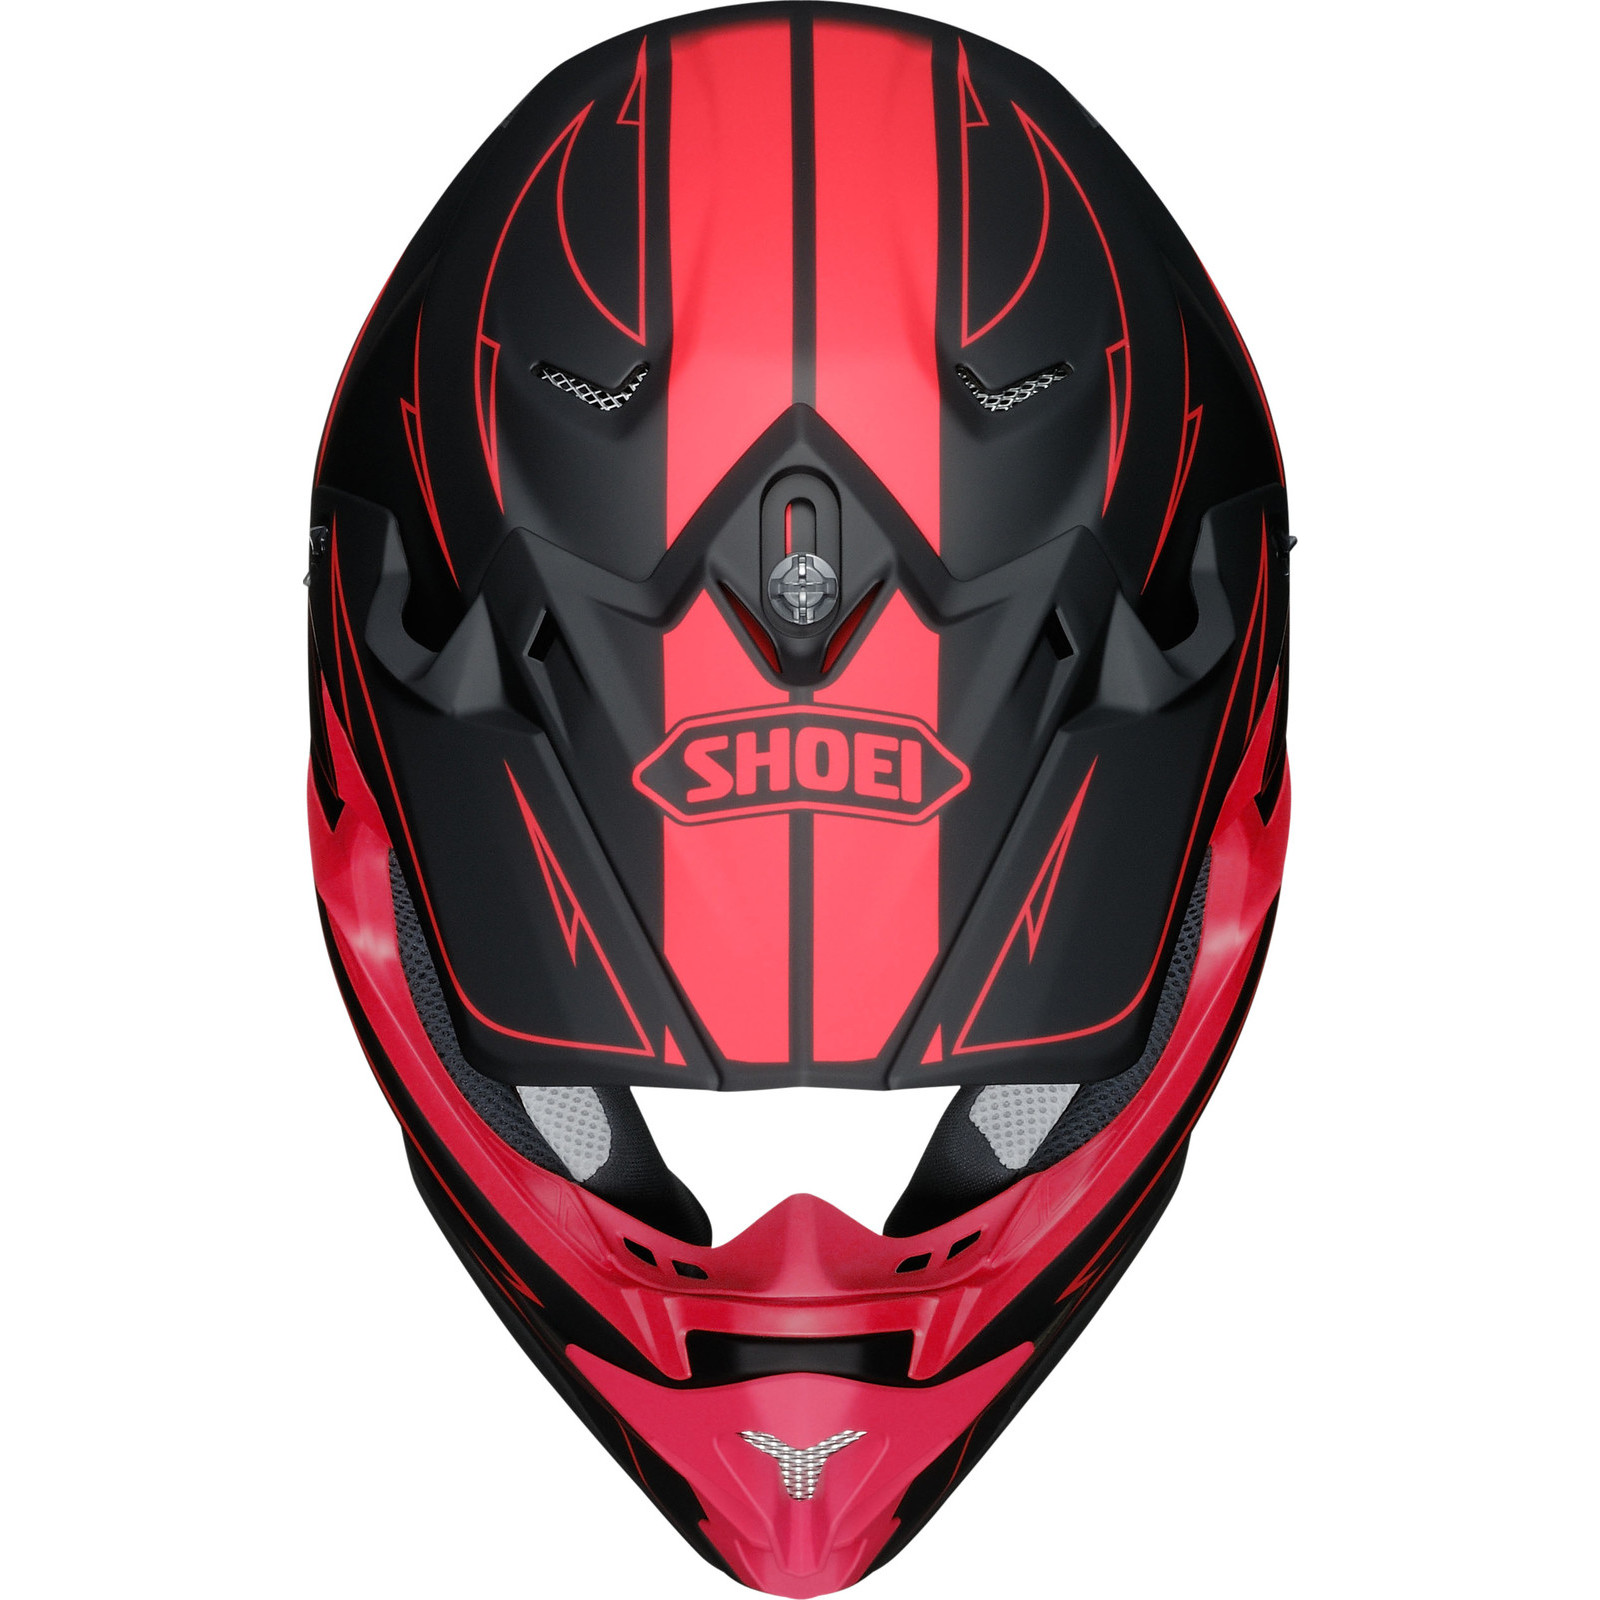 shoei vfx w hectic motocross mx helmet dirt adventure enduro off road snell acu ebay. Black Bedroom Furniture Sets. Home Design Ideas